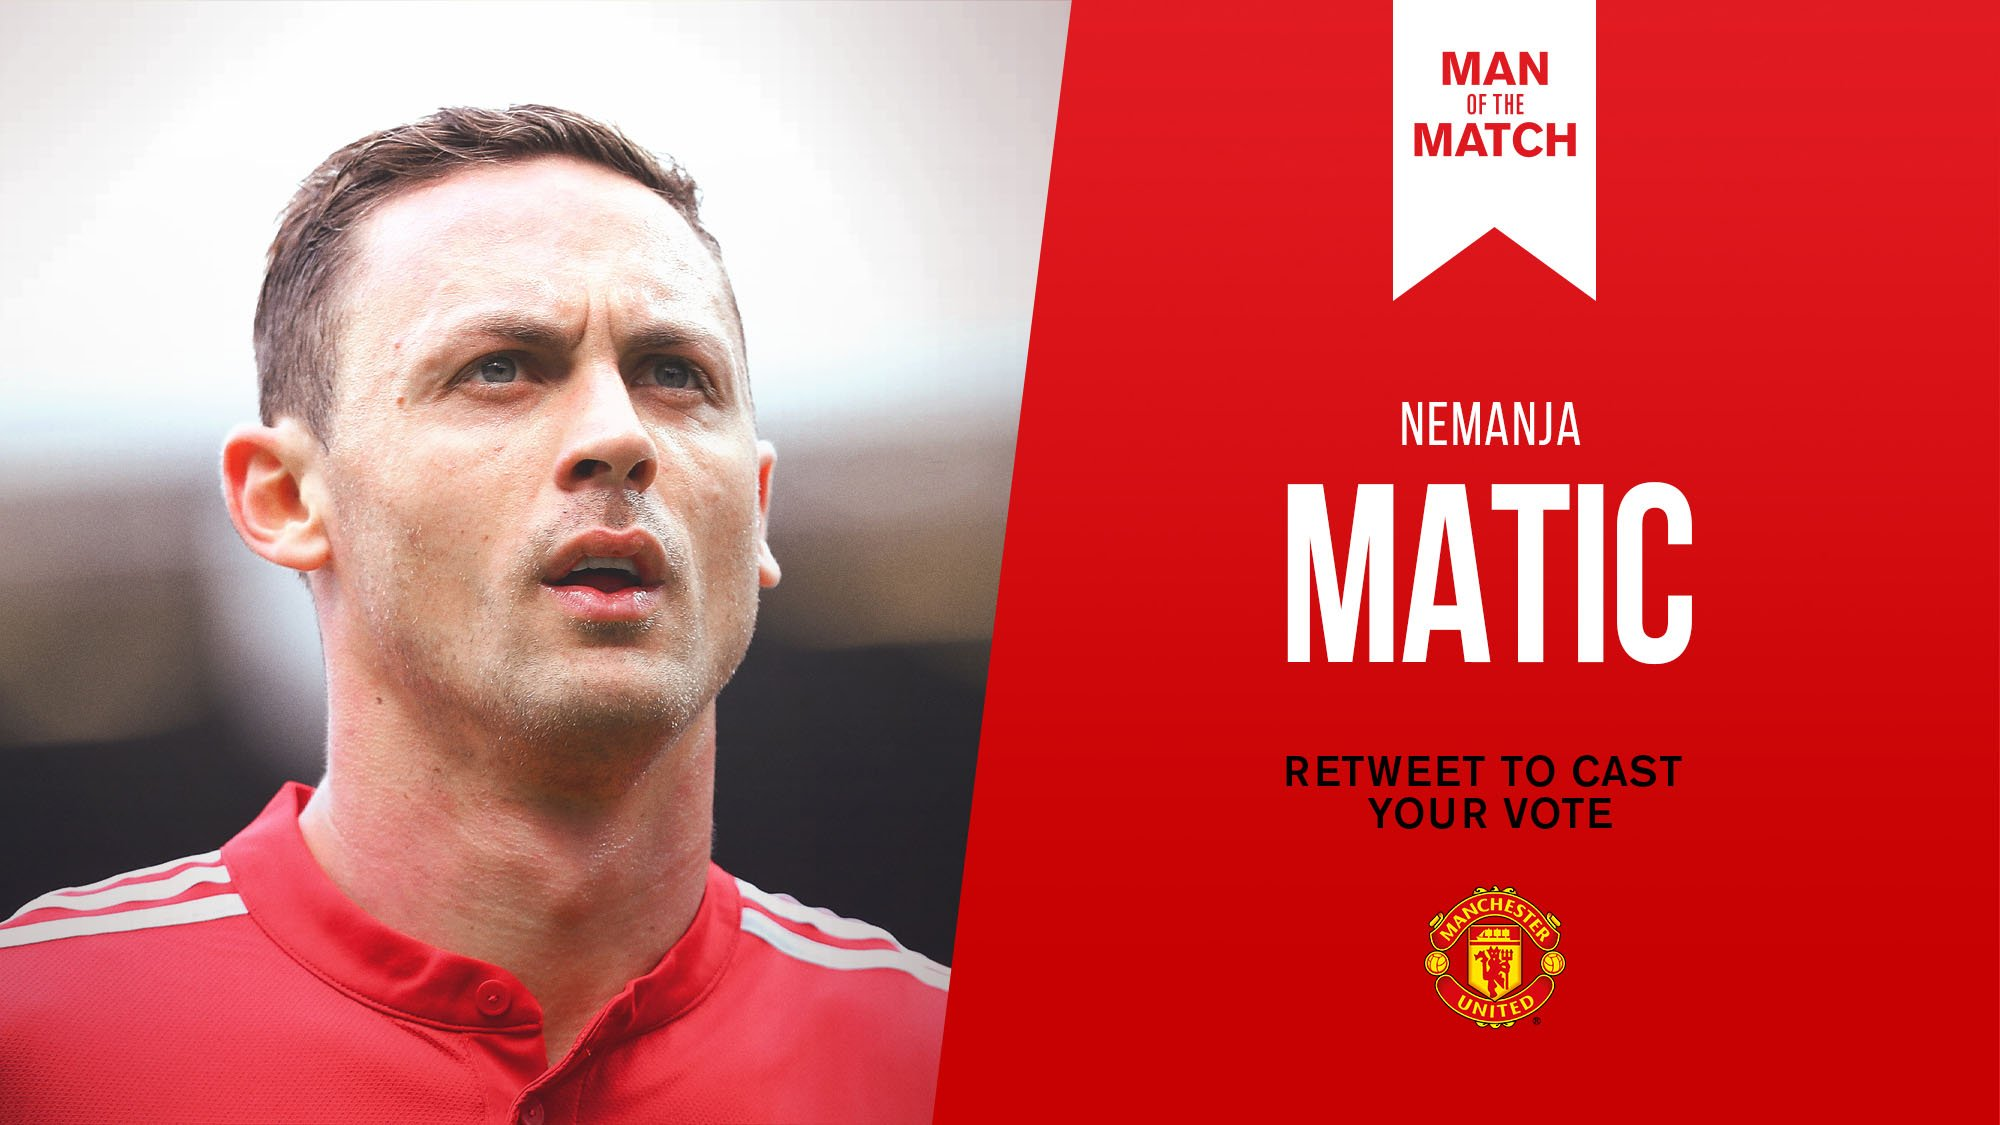 Retweet to vote for Nemanja Matic as #MUFC's Man of the Match against West Ham. https://t.co/bB7sHBmx51